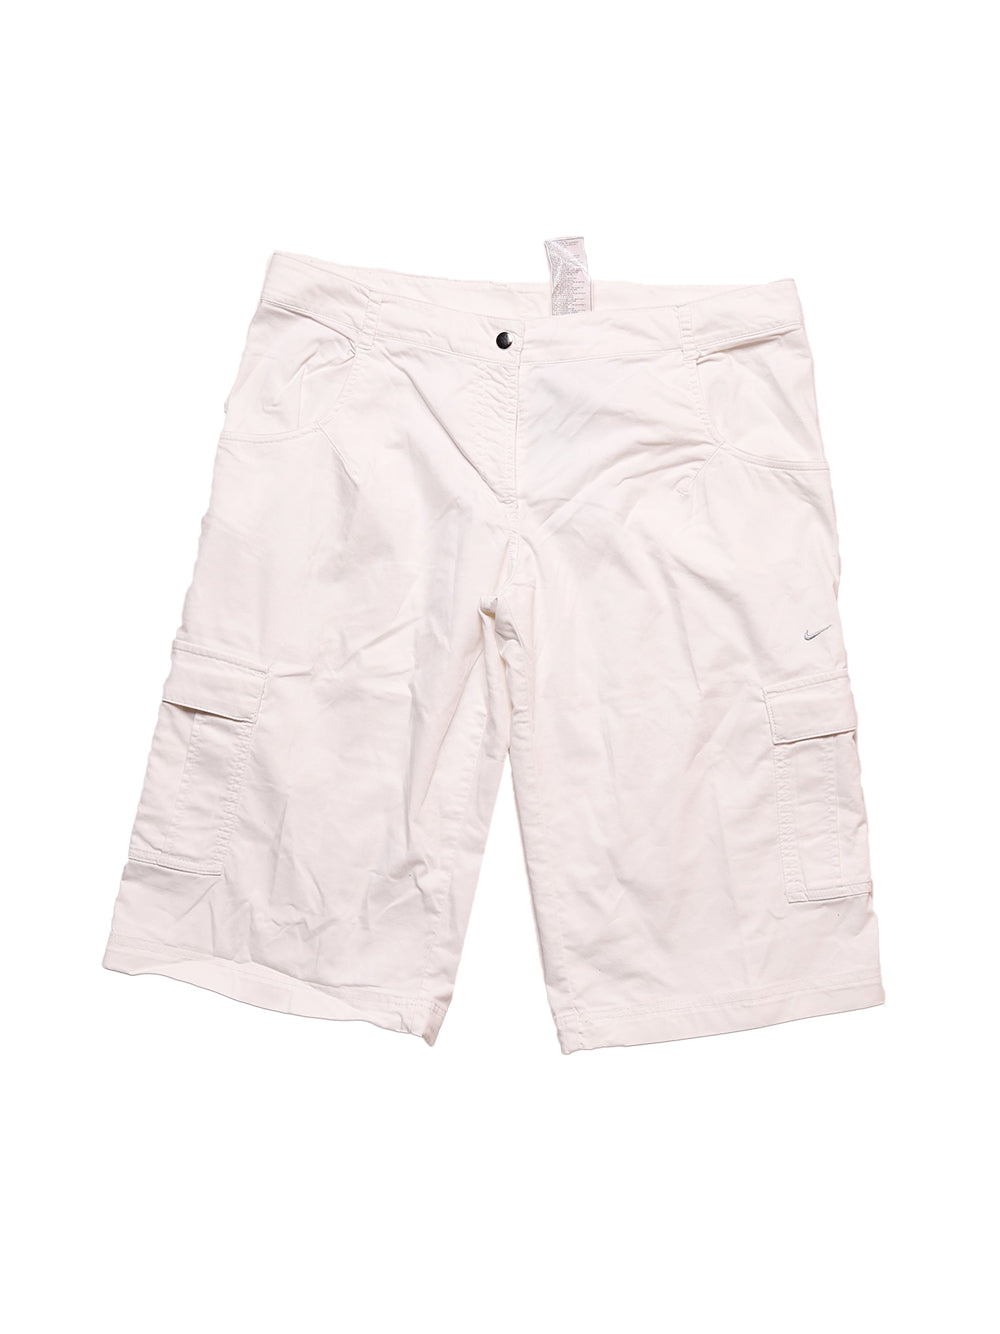 Front photo of Preloved Nike White Man's shorts - size 36/S